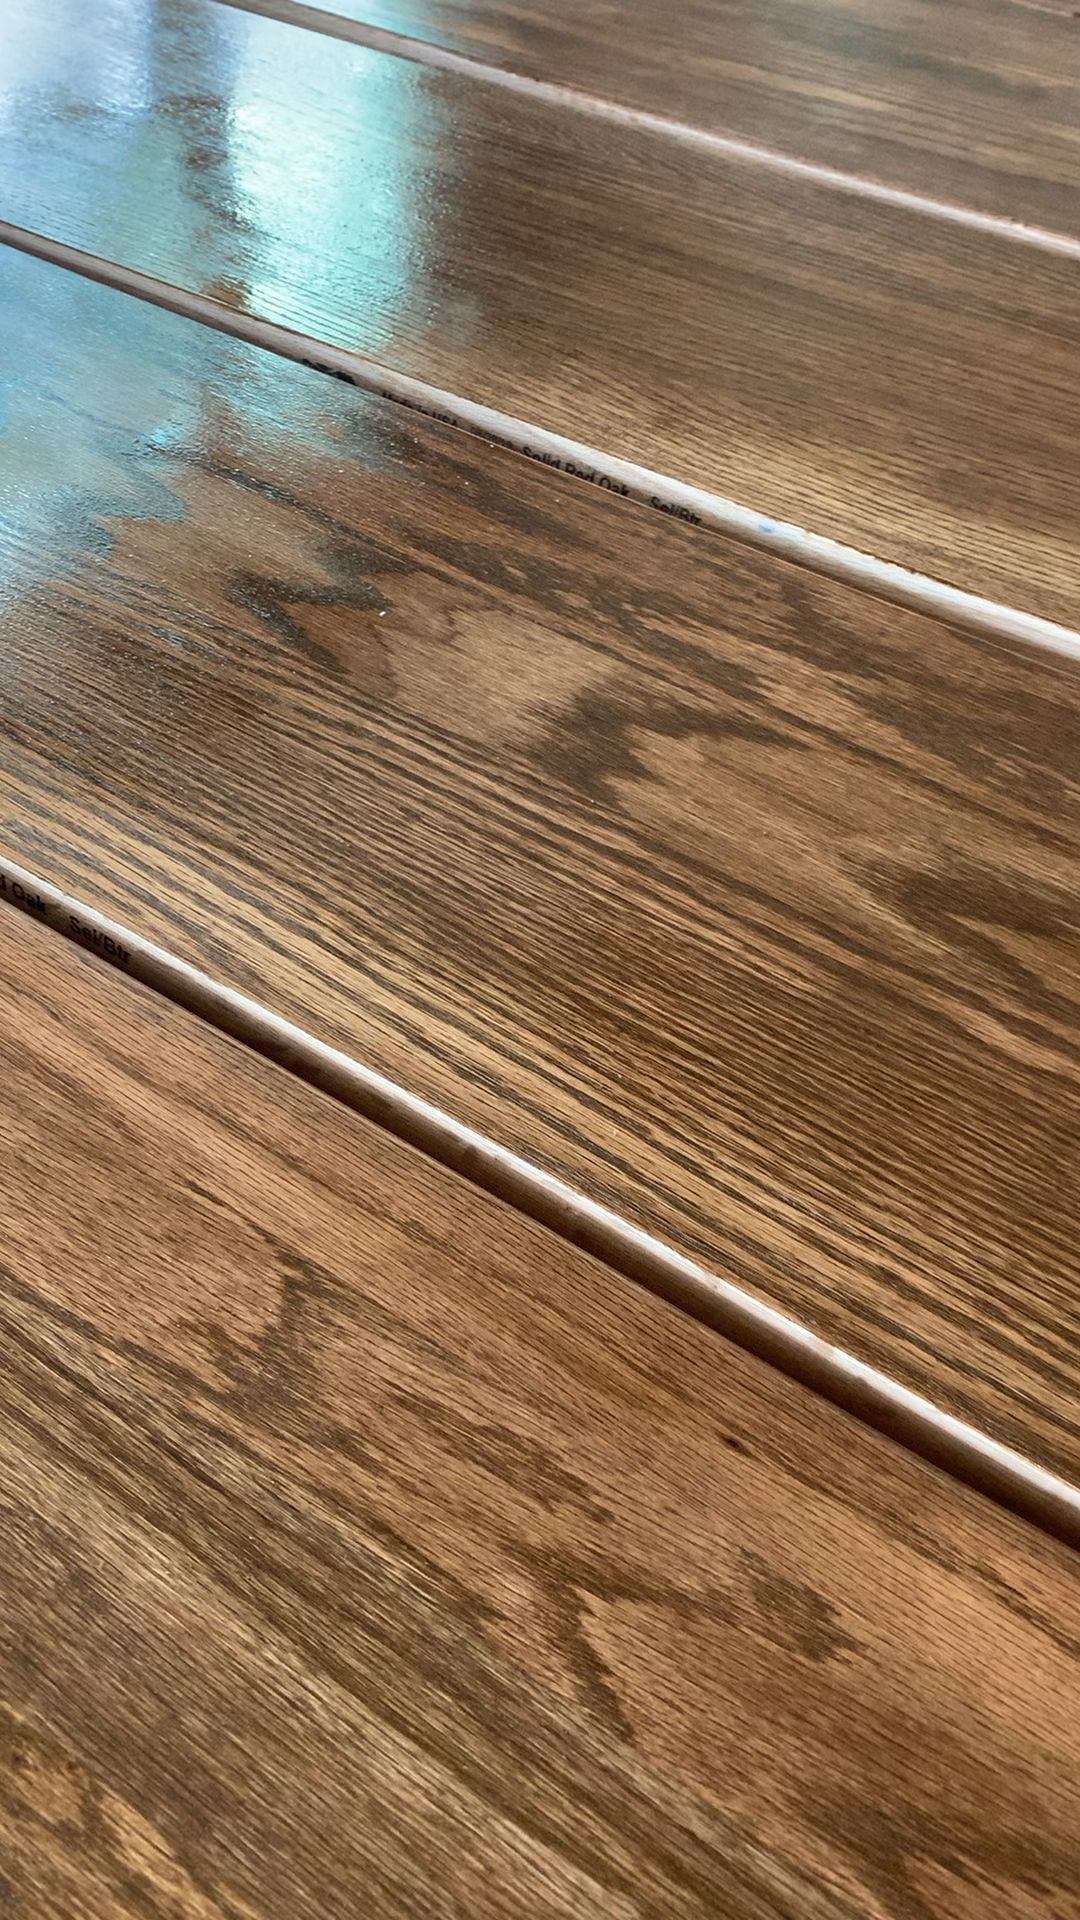 Quality Is Never An Accident It Is Always The Result Of An Intelligent Effort John Ruskin Video Staining Stairs Wood Look Tile Floor Wood Floor Design